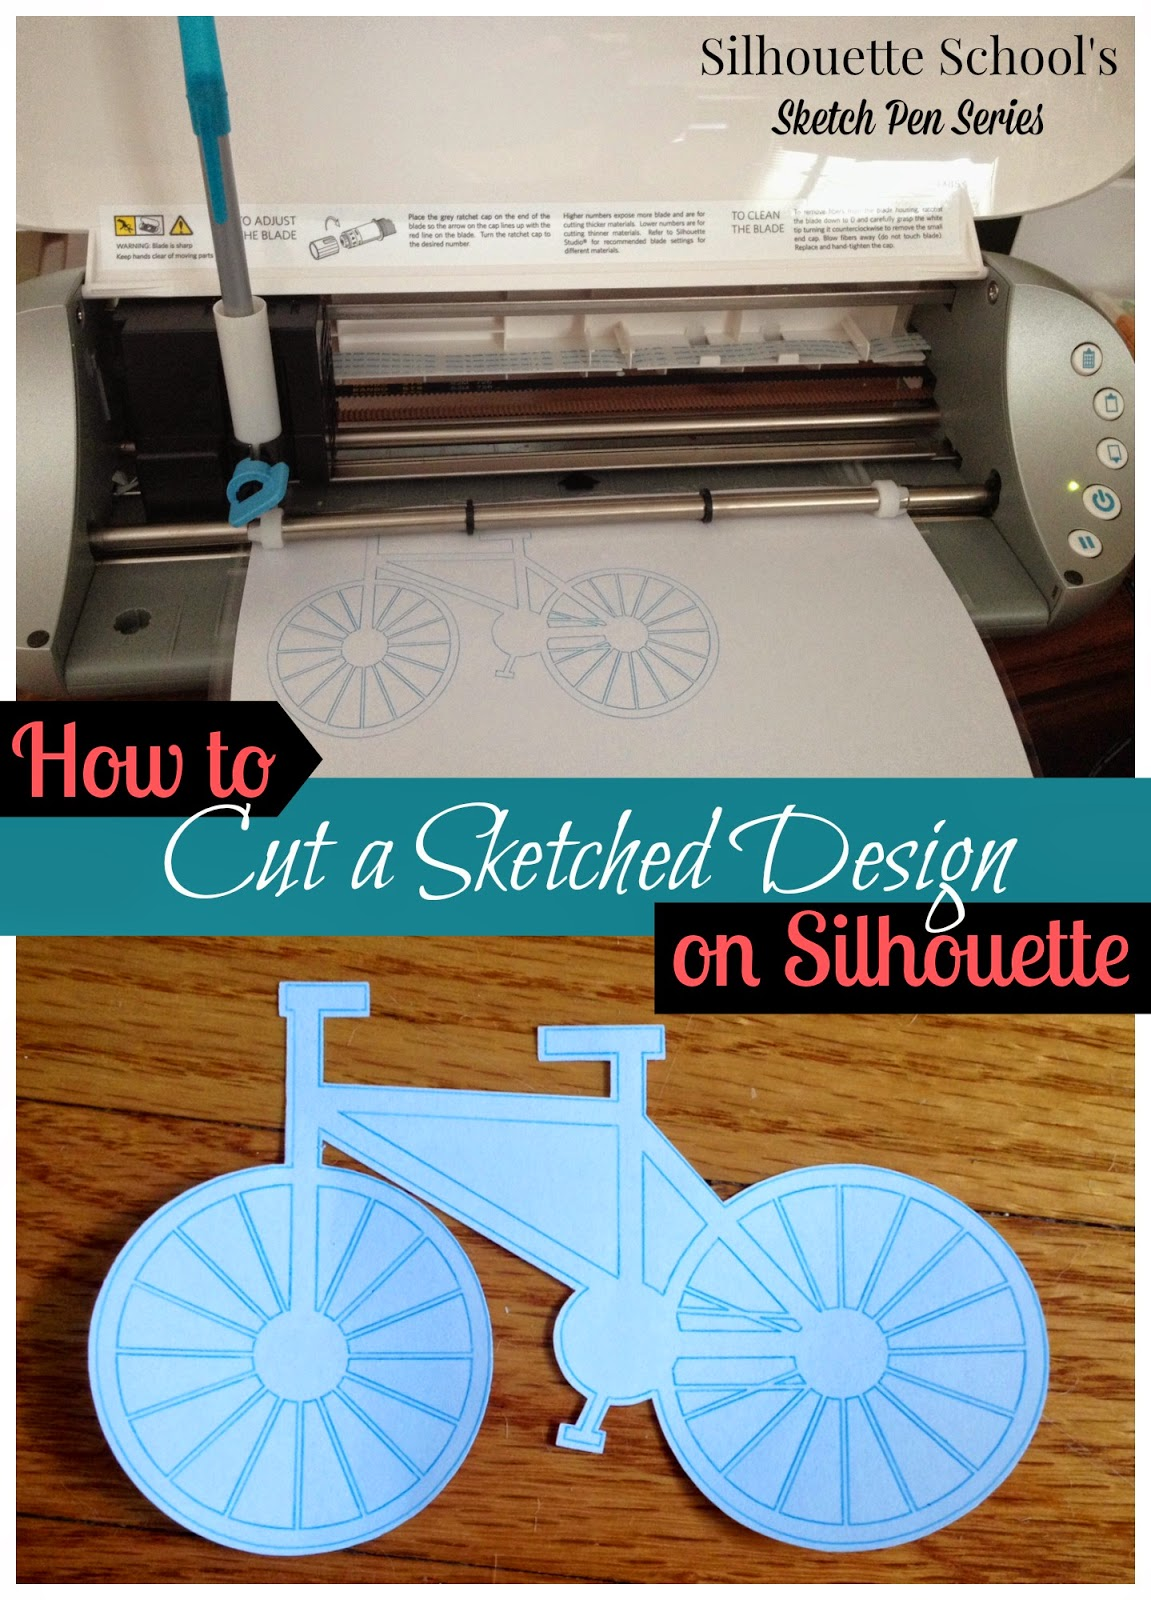 http://www.silhouetteschool.blogspot.com/2014/04/silhouette-sketch-pen-tutorial-how-to.html